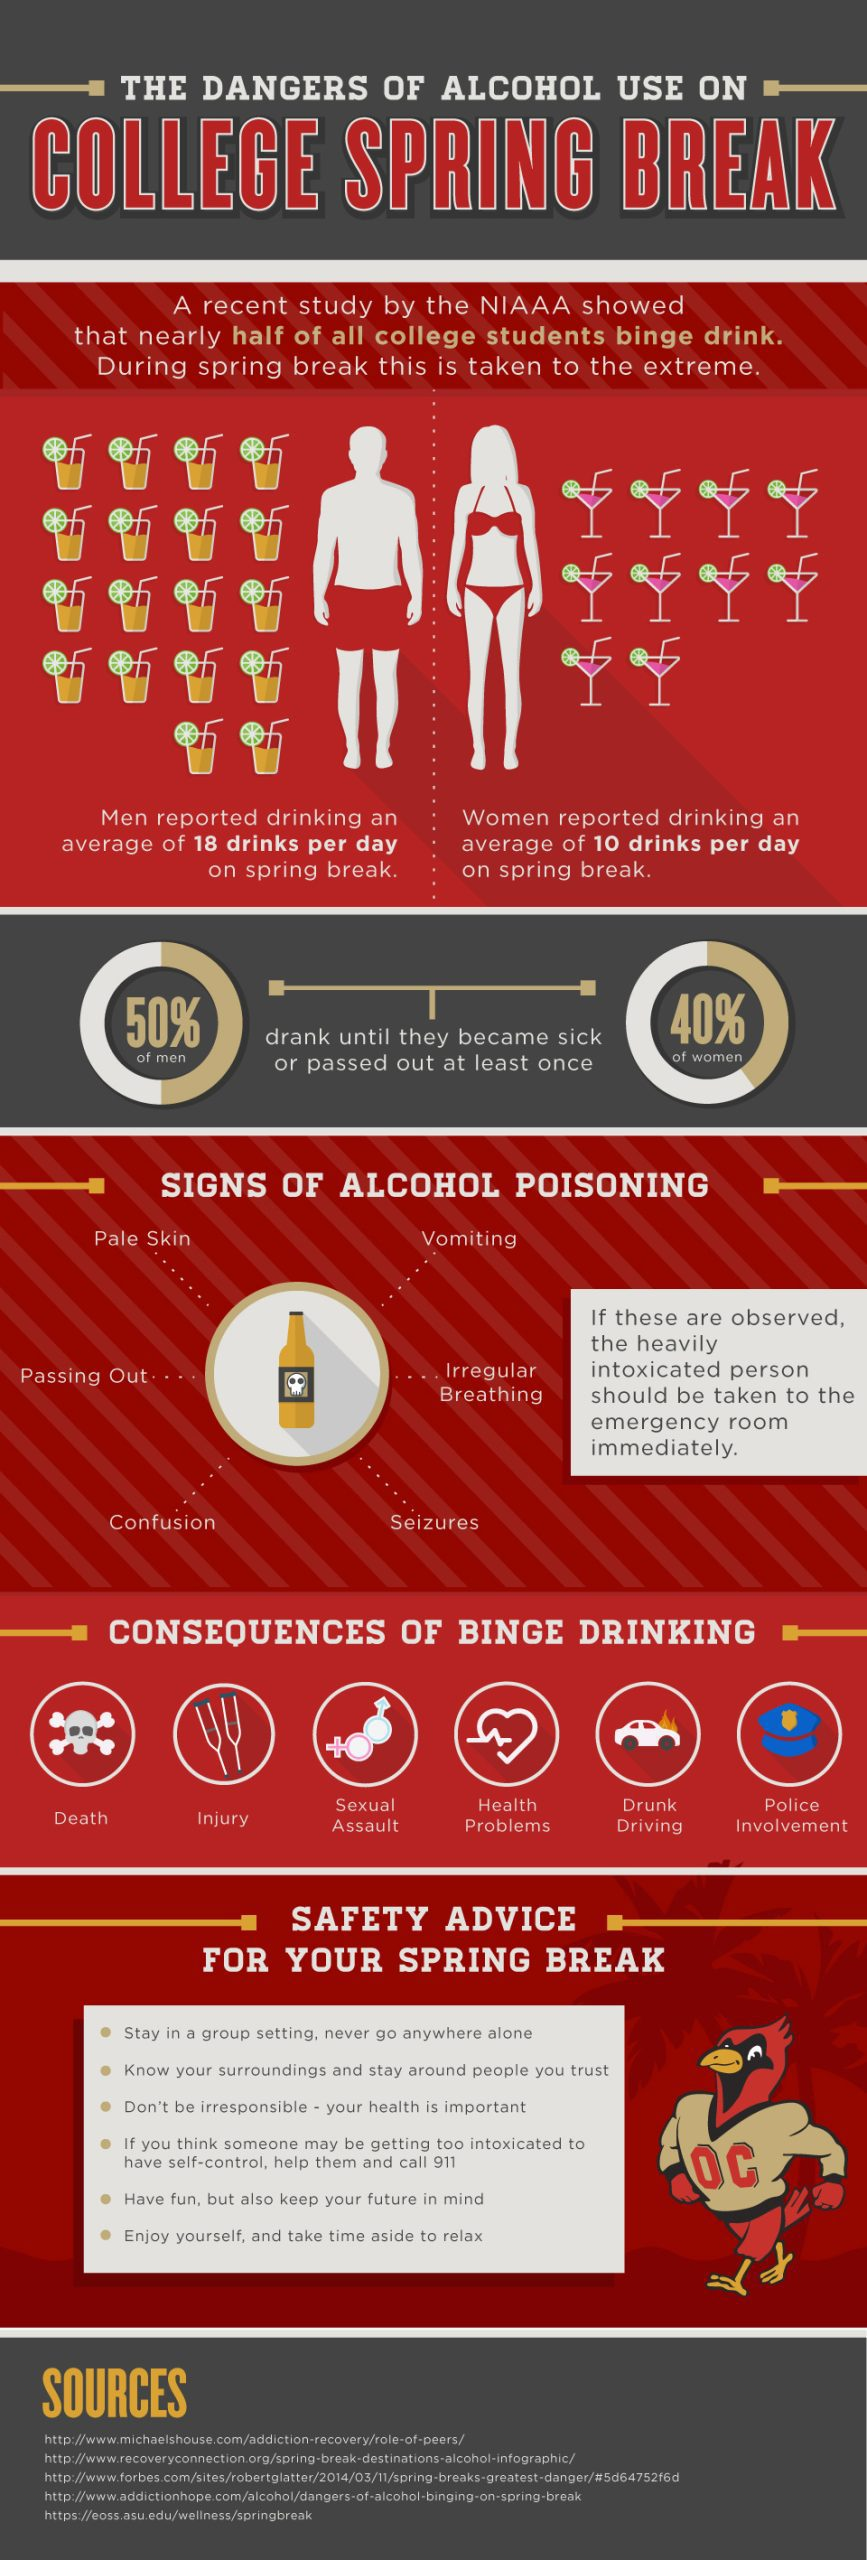 Alcohol use while on spring break for college students can be dangerous. its important to recognize signs of binge drinking, peer pressure and times where help is needed. The niaaa has a study showing that men have reported drinking an average of 18 drinks per day on spring break.